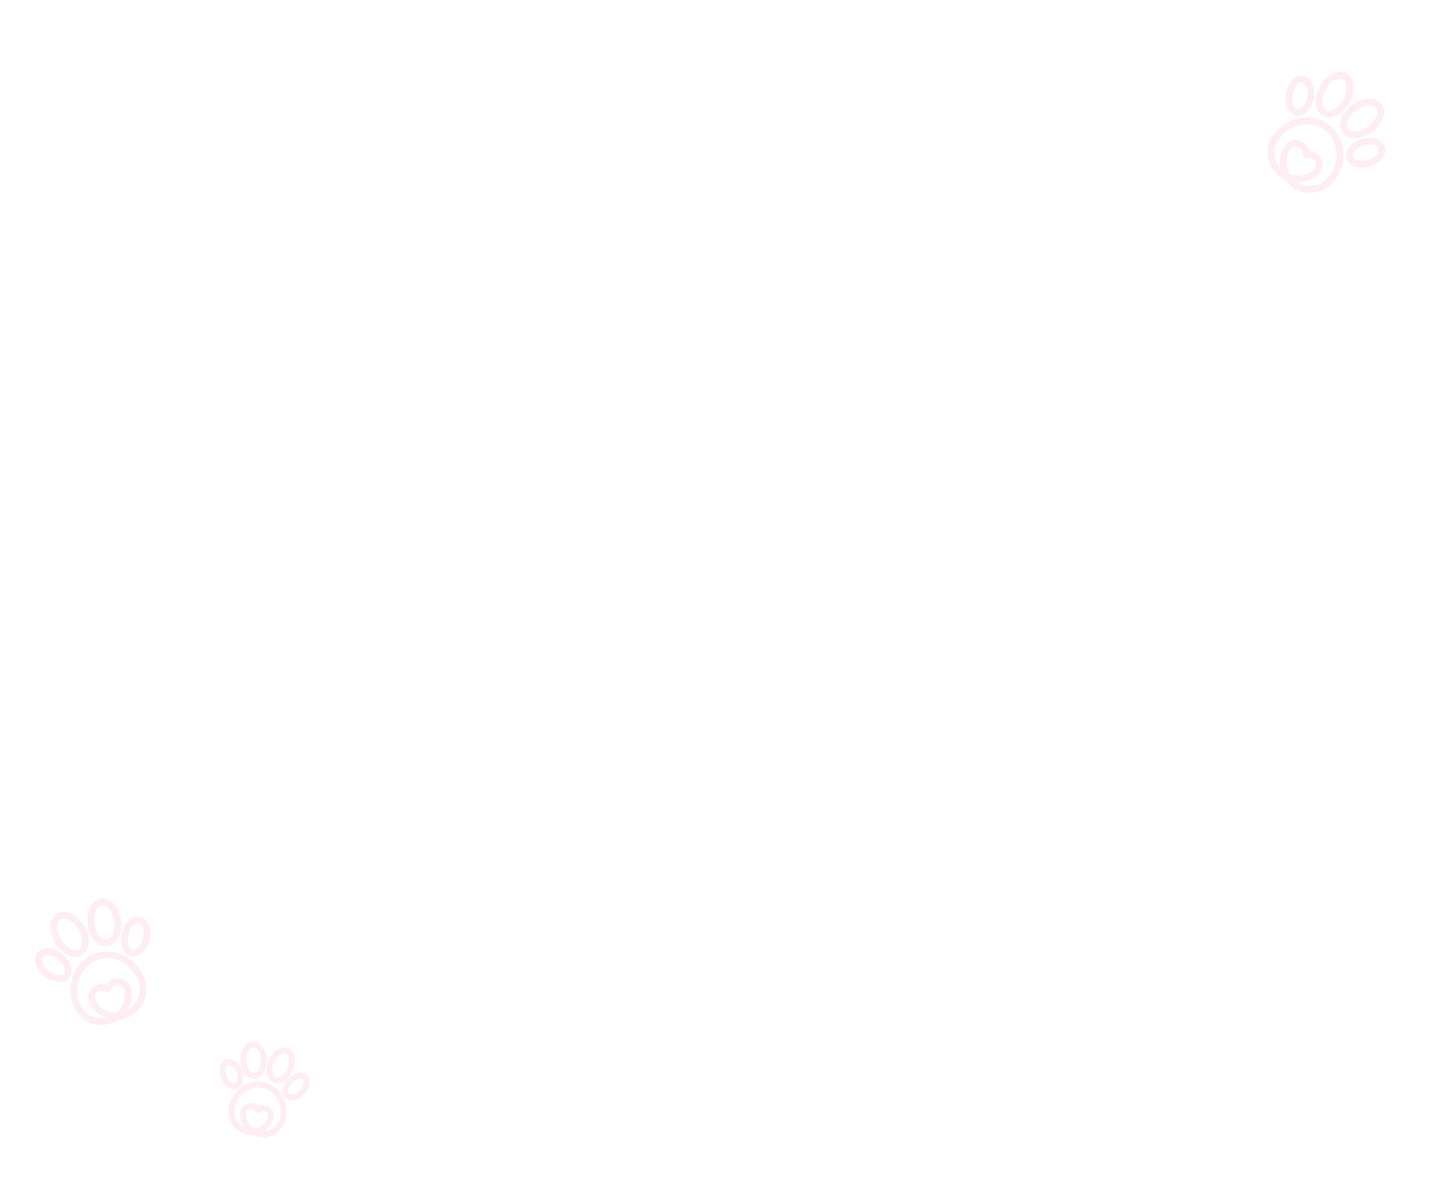 Transparent background with white paw print drawings.